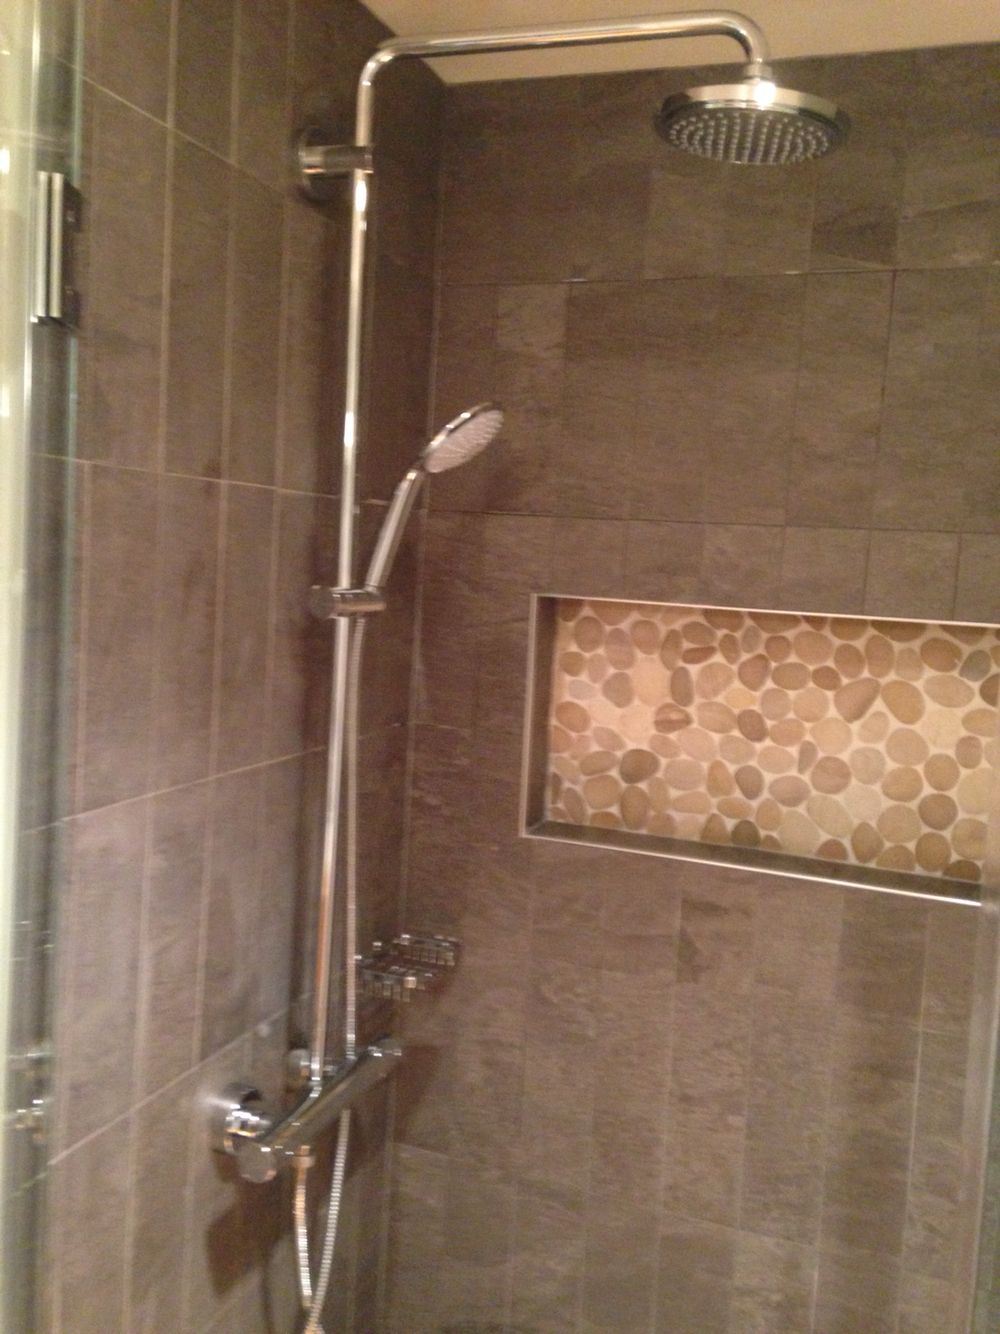 Tiled Shower Edge hans grohe shower system, niche with schluter edge profile & flat